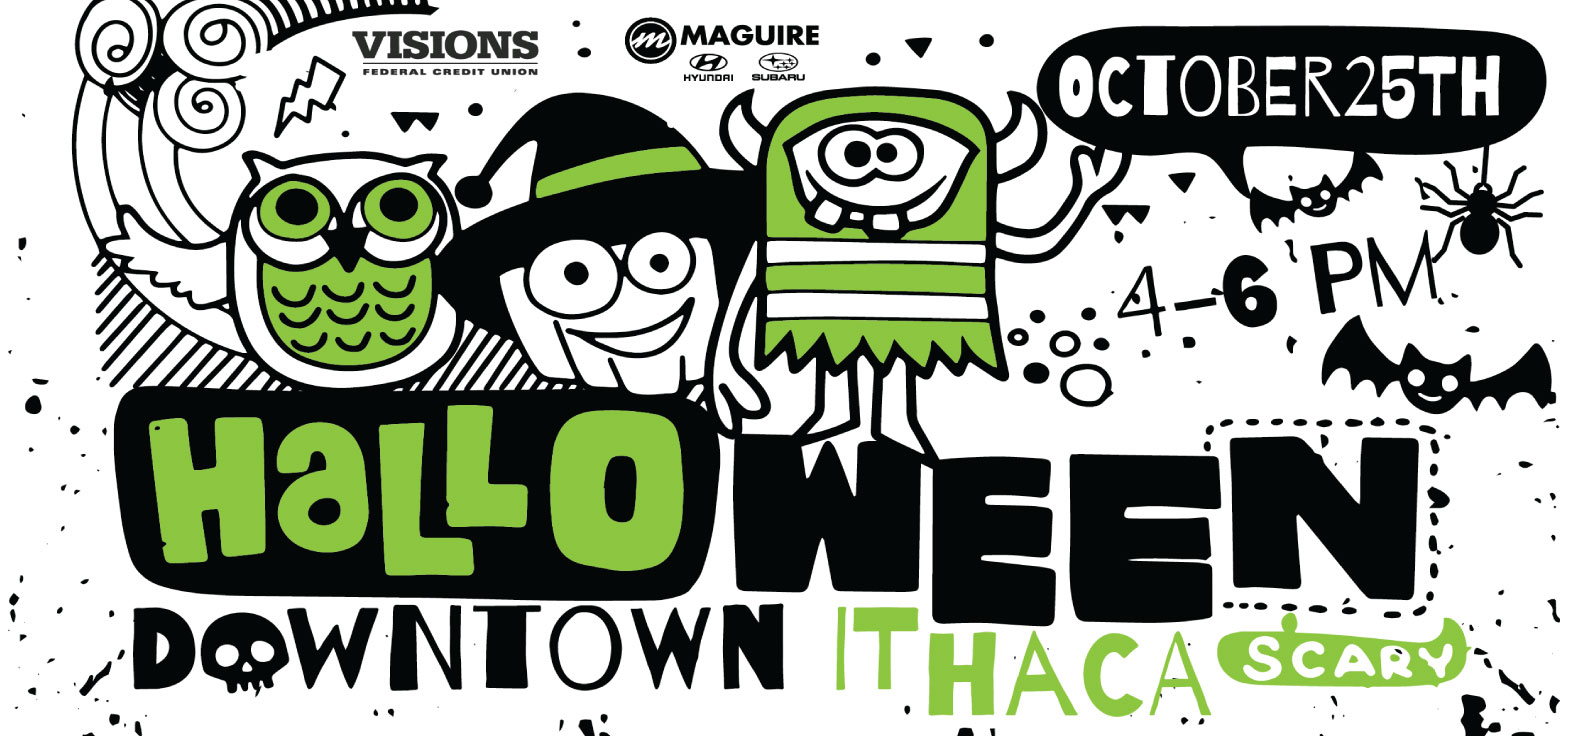 Halloween in Downtown Ithaca October 25th